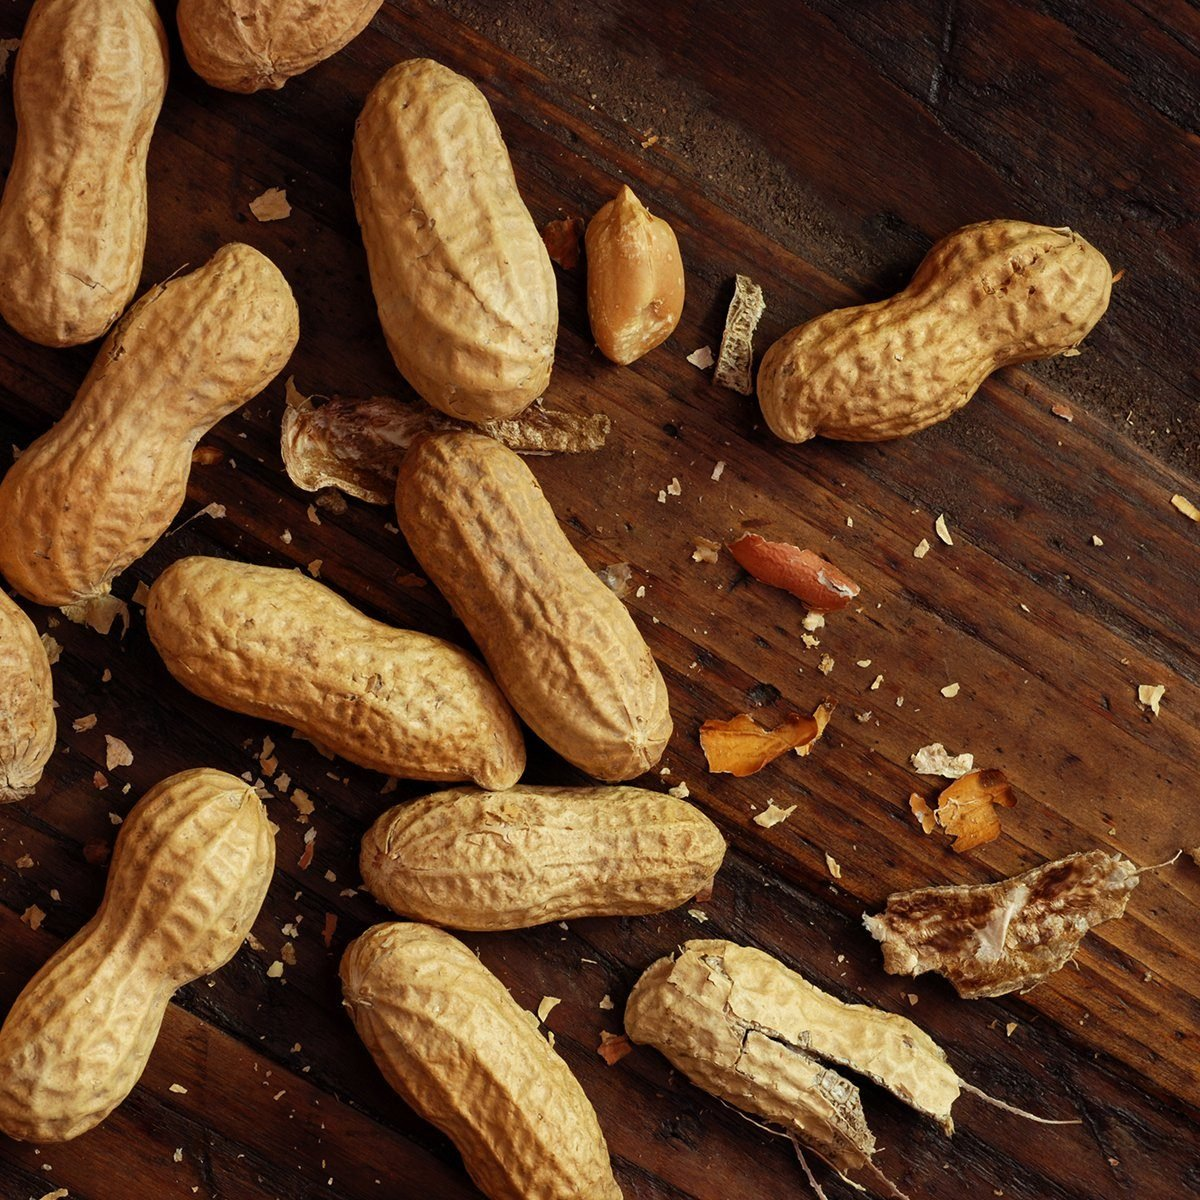 Roasted peanuts with broken shells and pieces scattered on rustic, dark wood background.